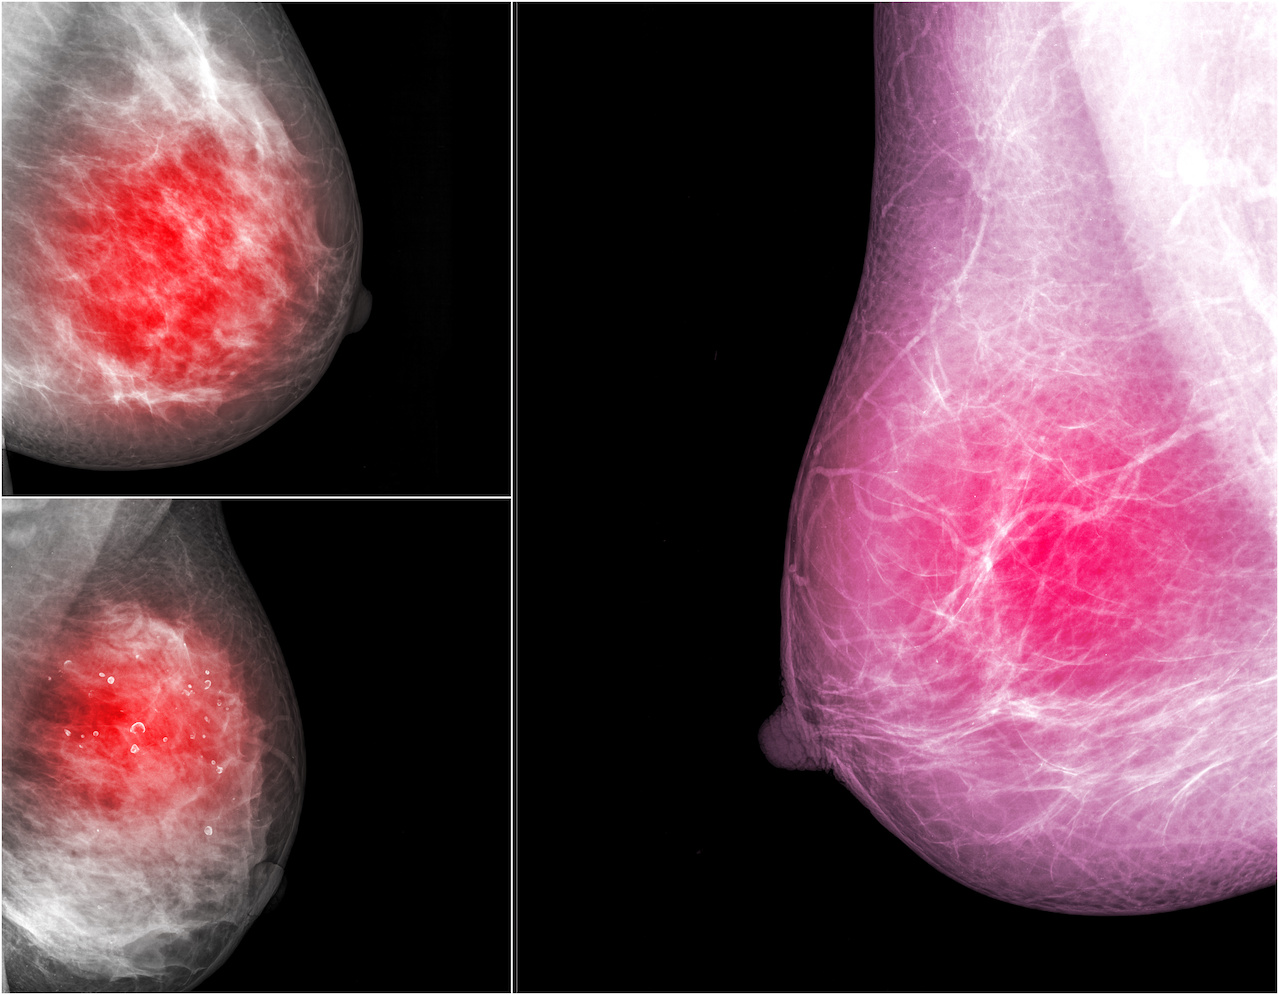 AB MRI Shown to Improve Cancer Detection Rate in Women With Dense Breast Tissue